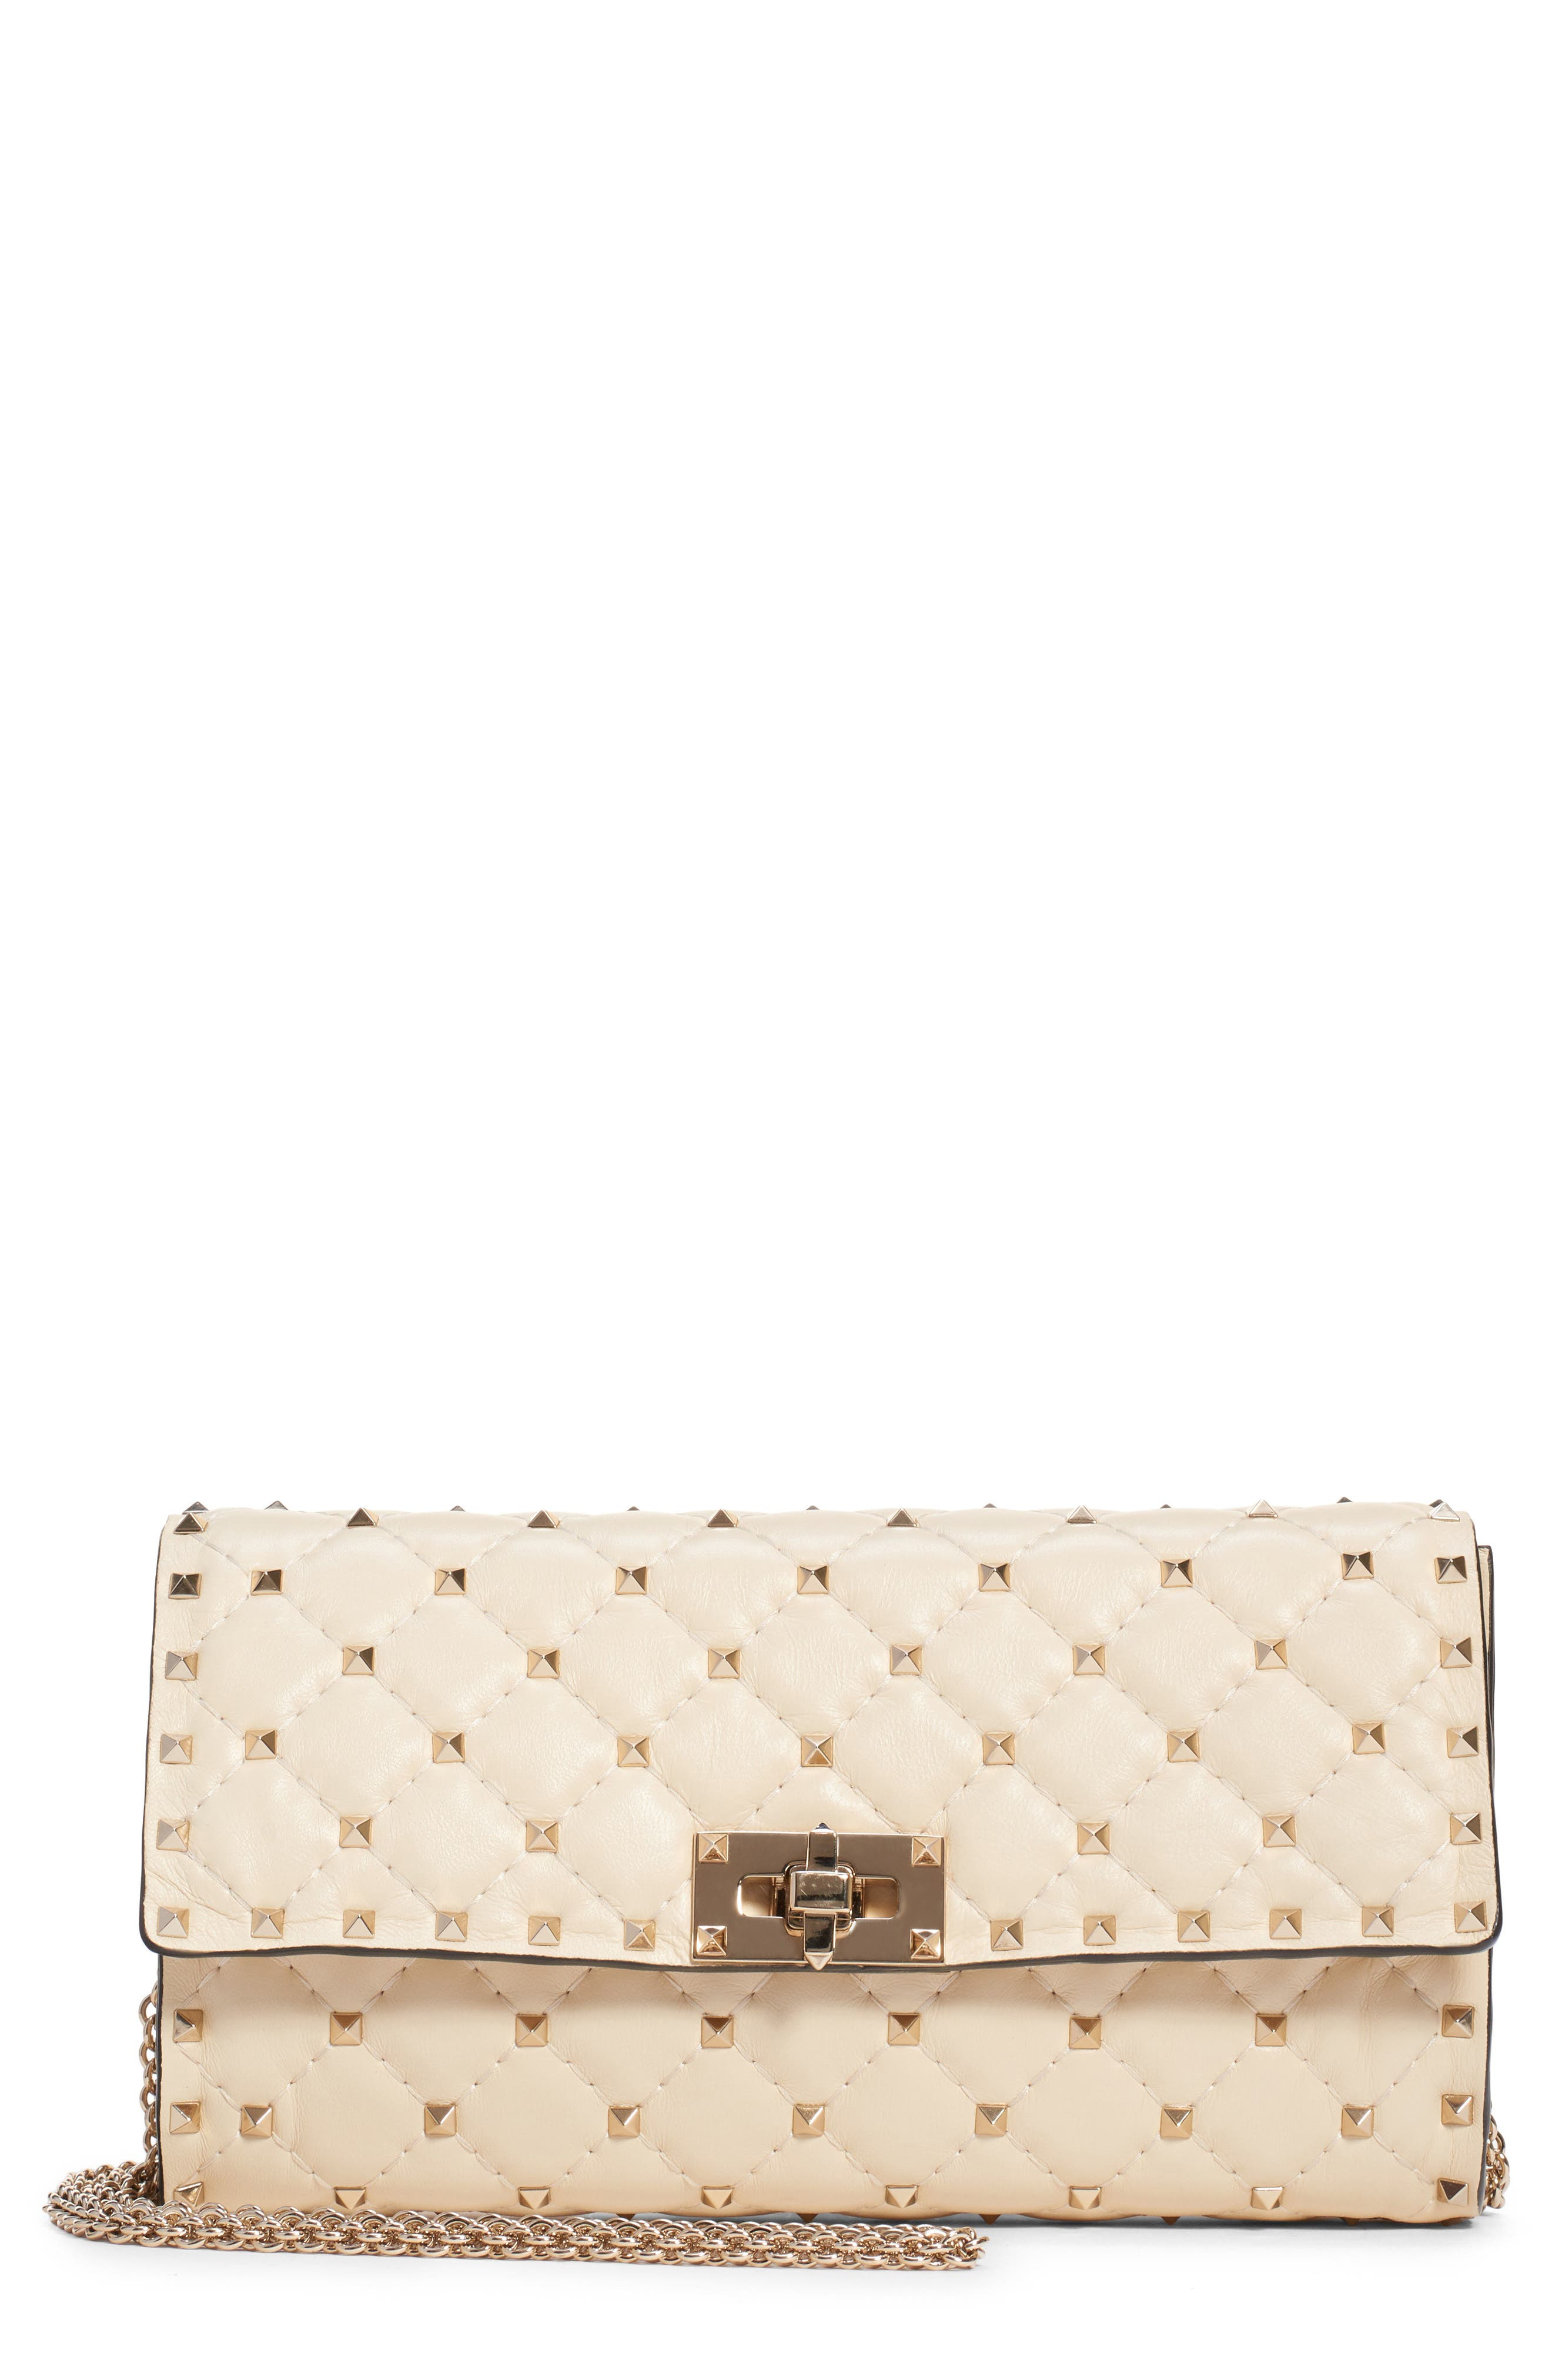 Rockstud Matelassé Quilted Leather Crossbody Bag,                             Main thumbnail 1, color,                             LIGHT IVORY